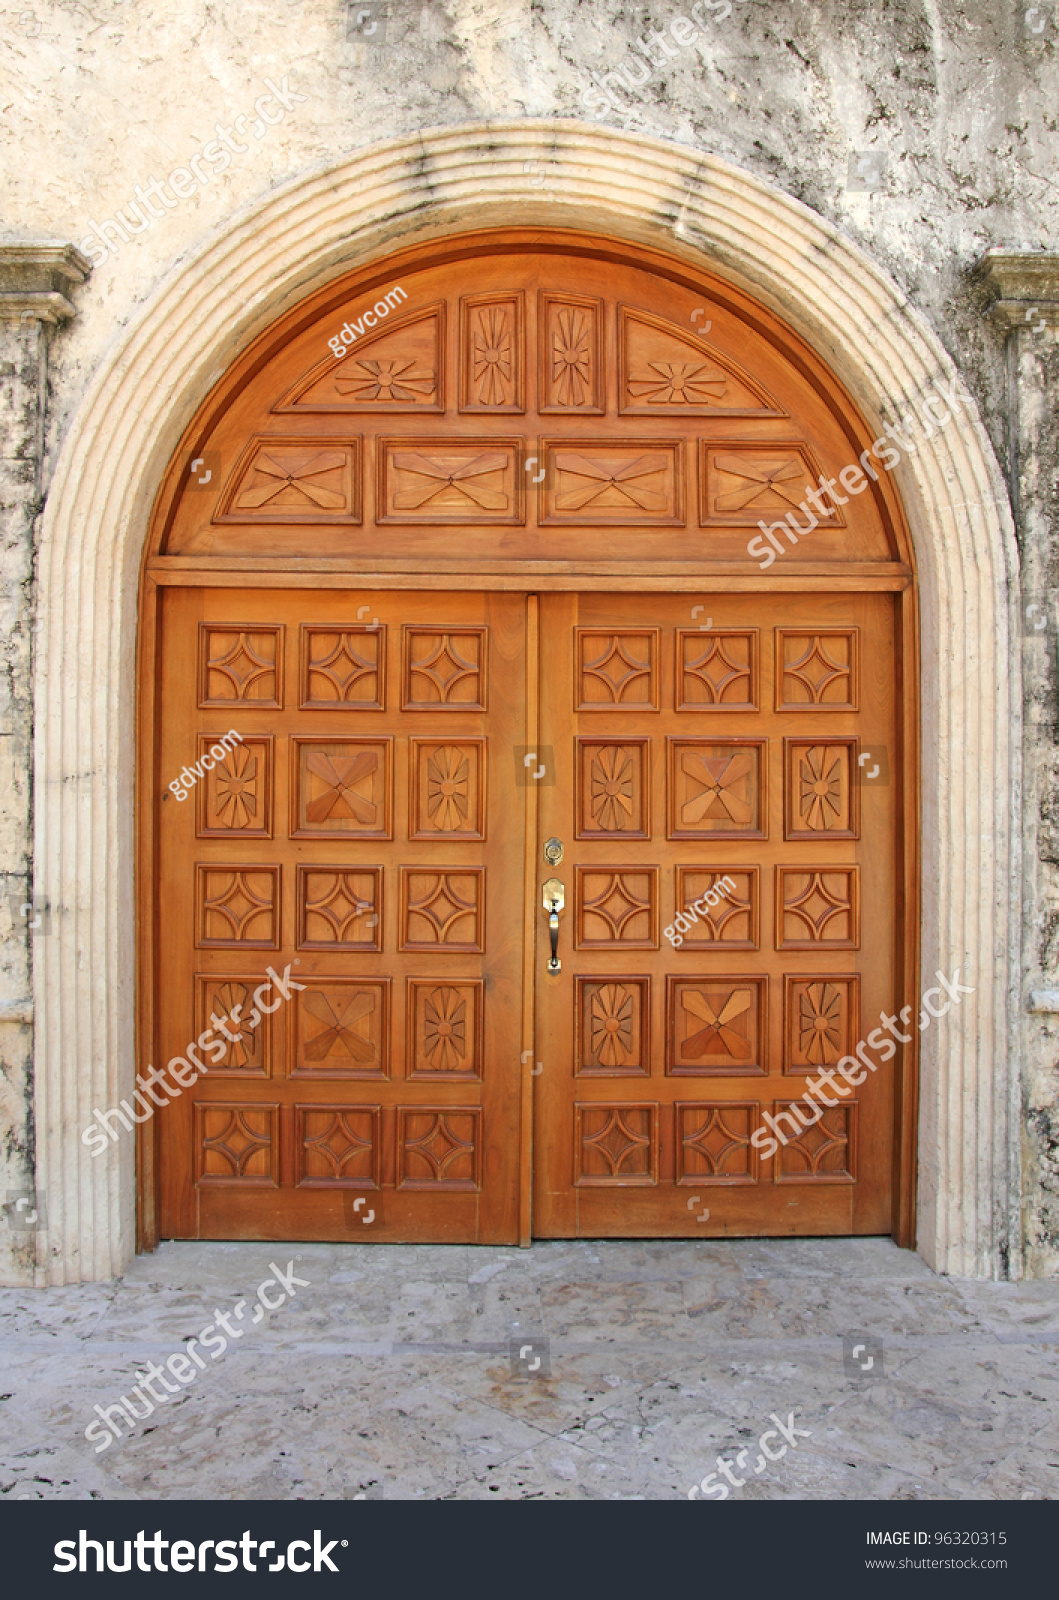 Closeup of a big wooden door entrance stock photo 96320315 for Big entrance door